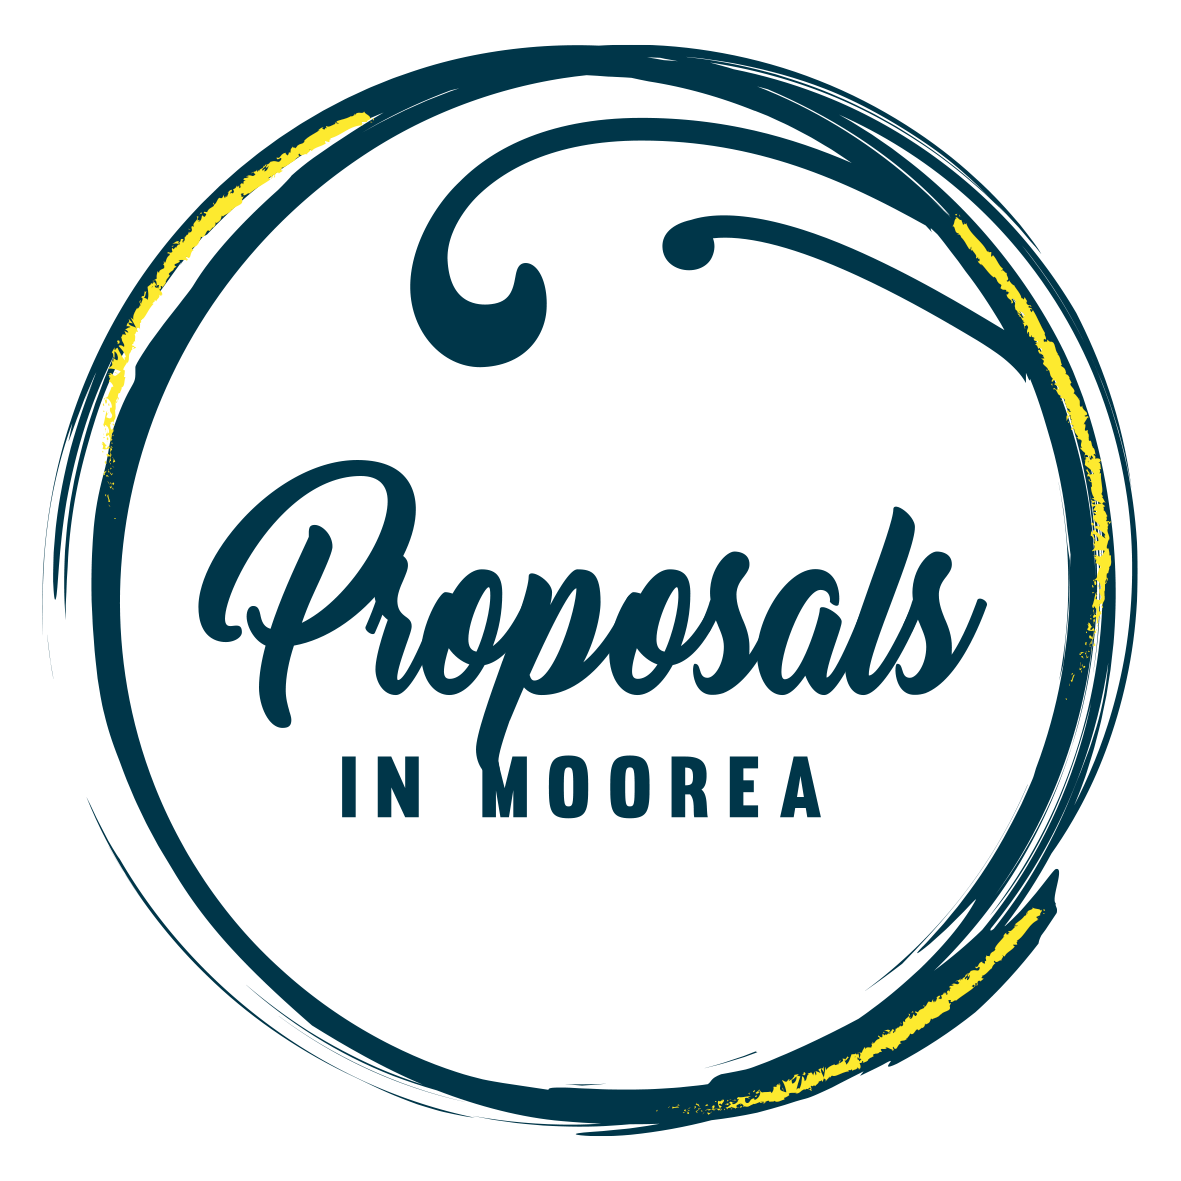 Proposals in Moorea